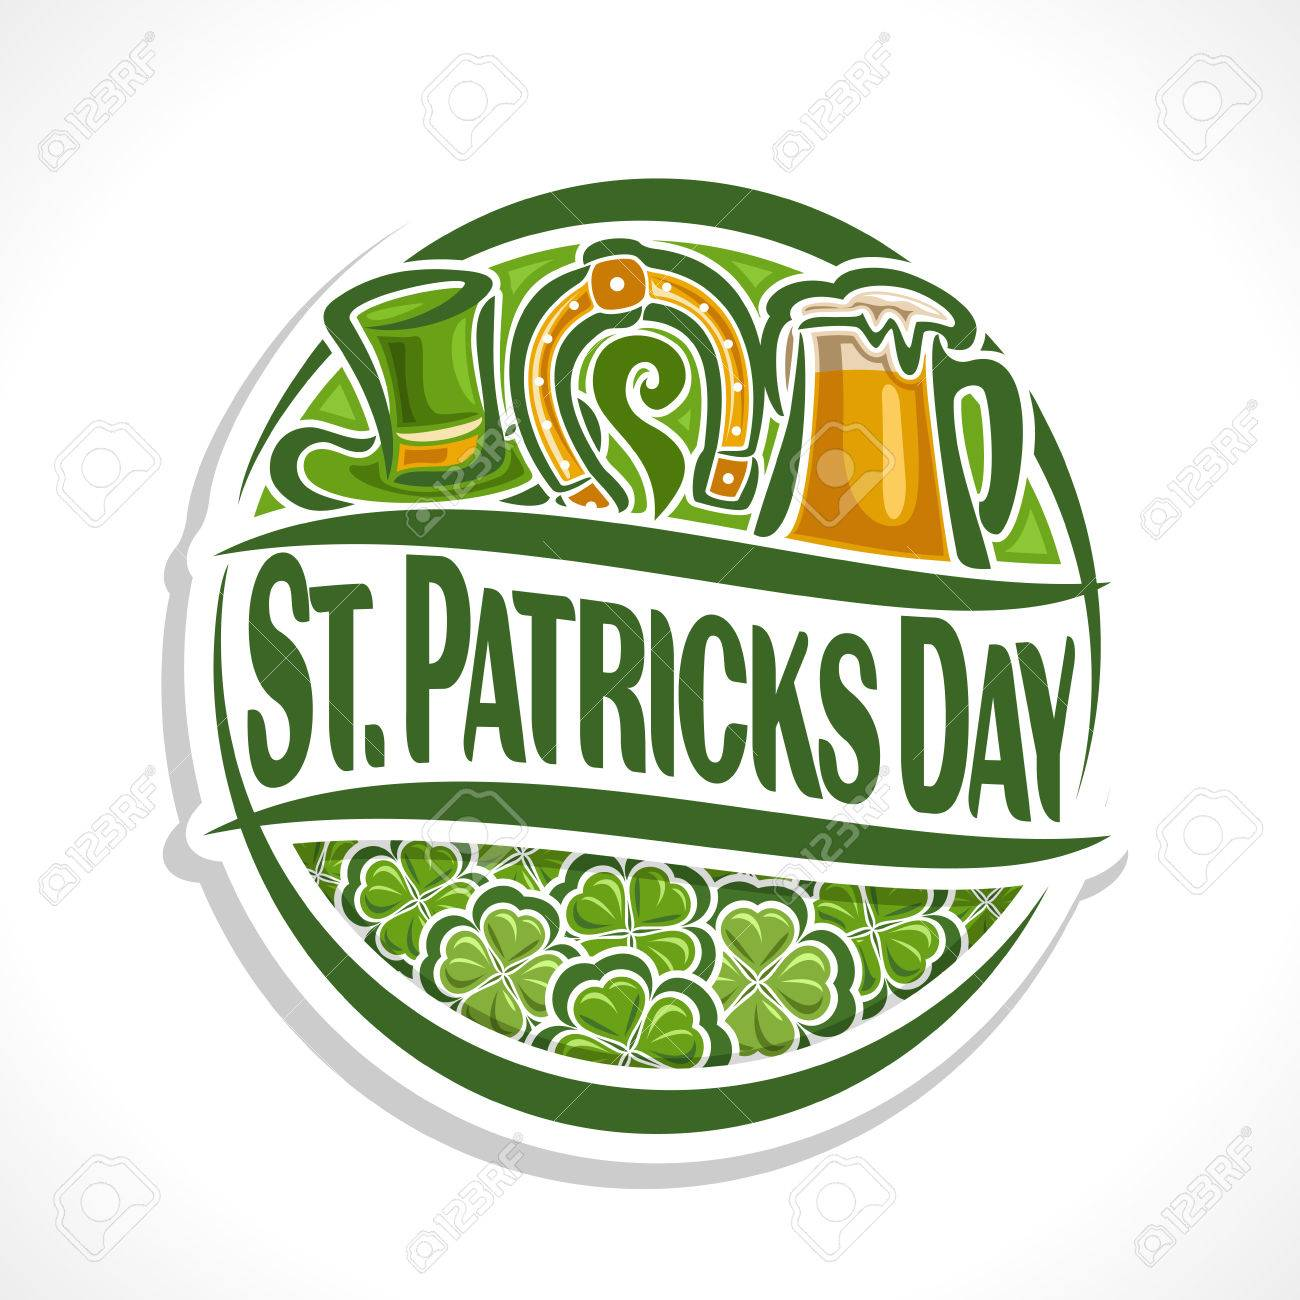 d3d2c1d23cb Vector - Vector abstract logo for St Patrick s Day on Shamrock background